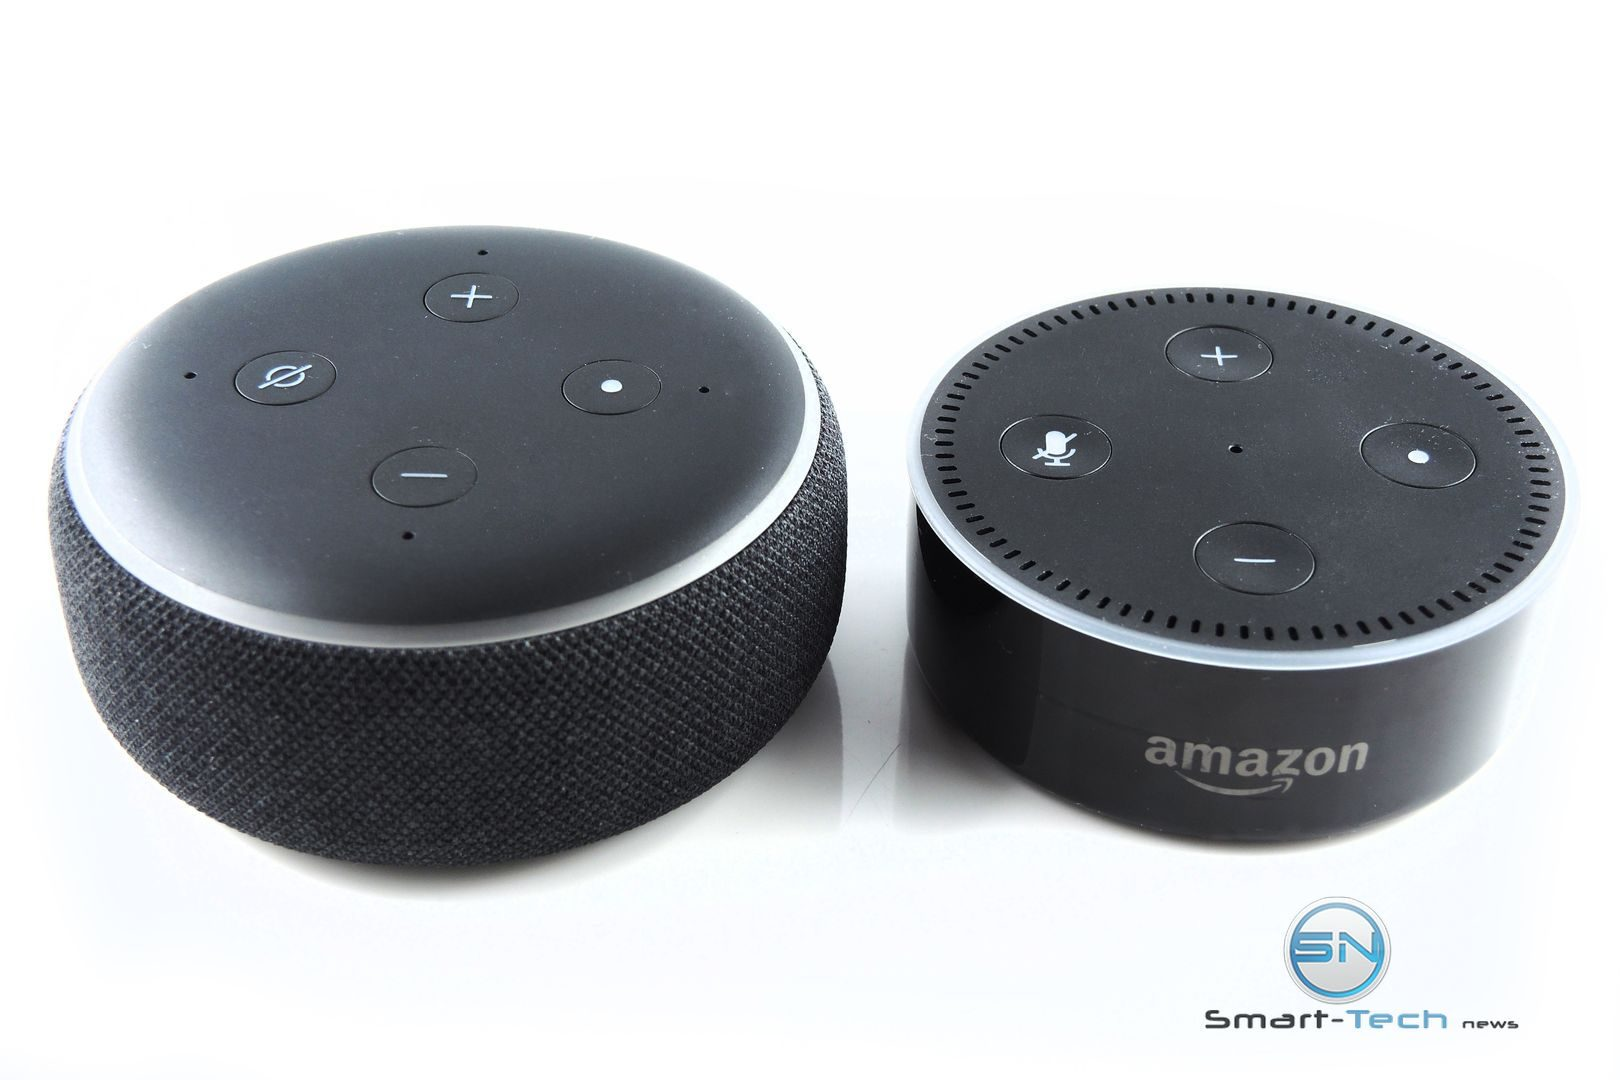 Amazon Echo Dot 3 vs Dot 2 - SmartTechNews